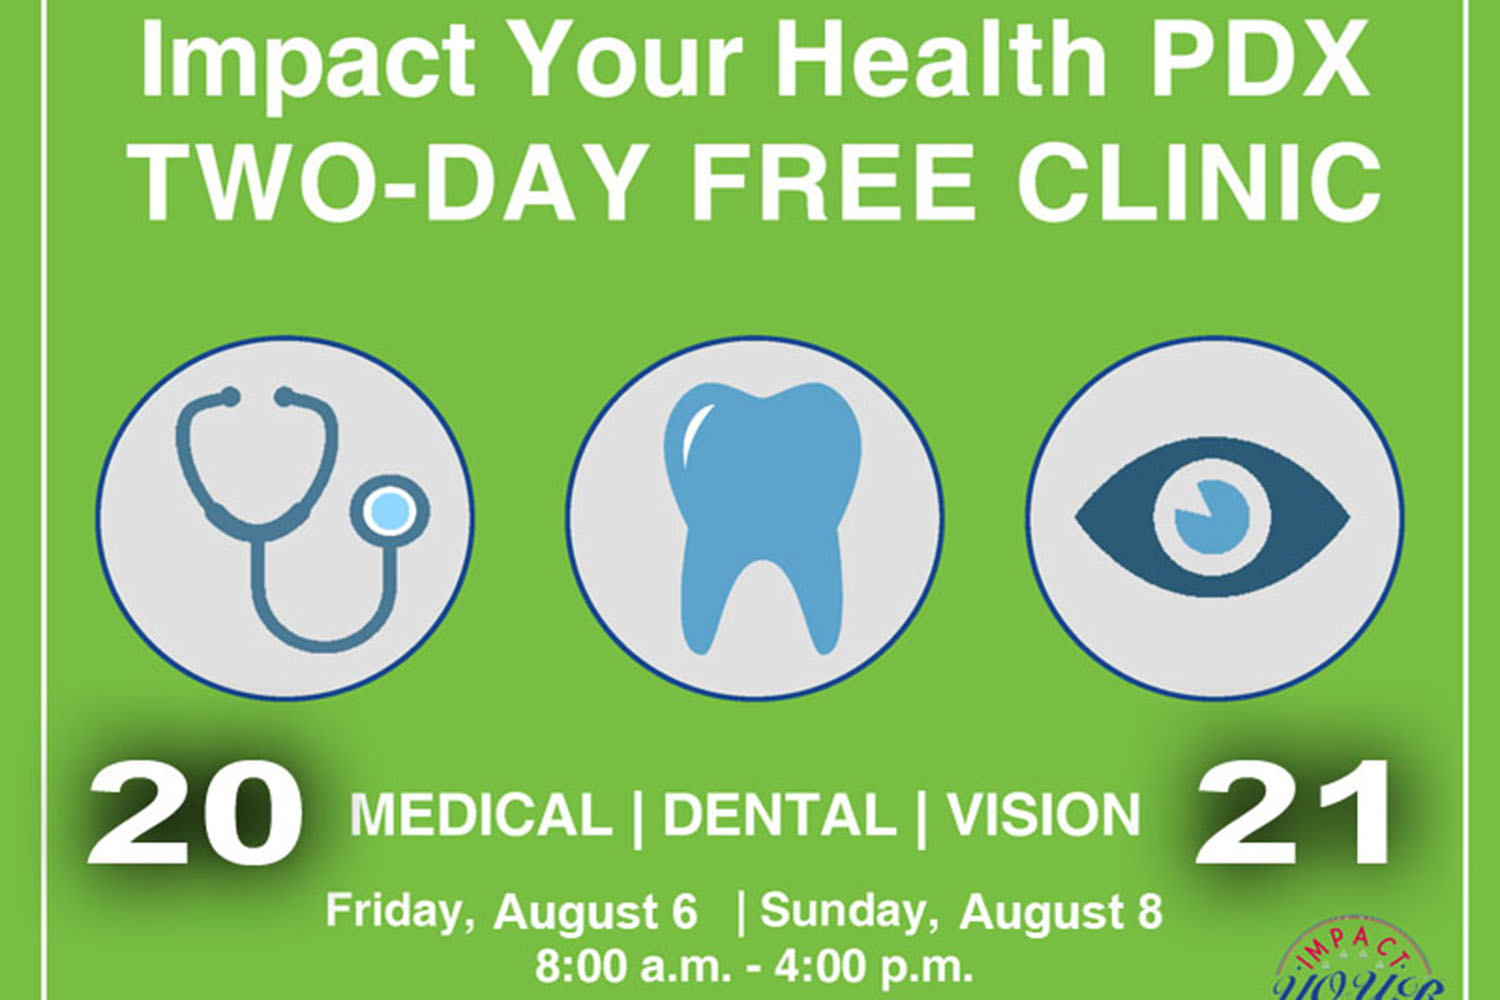 SAVE THE DATE: Impact Your Health PDX 2021